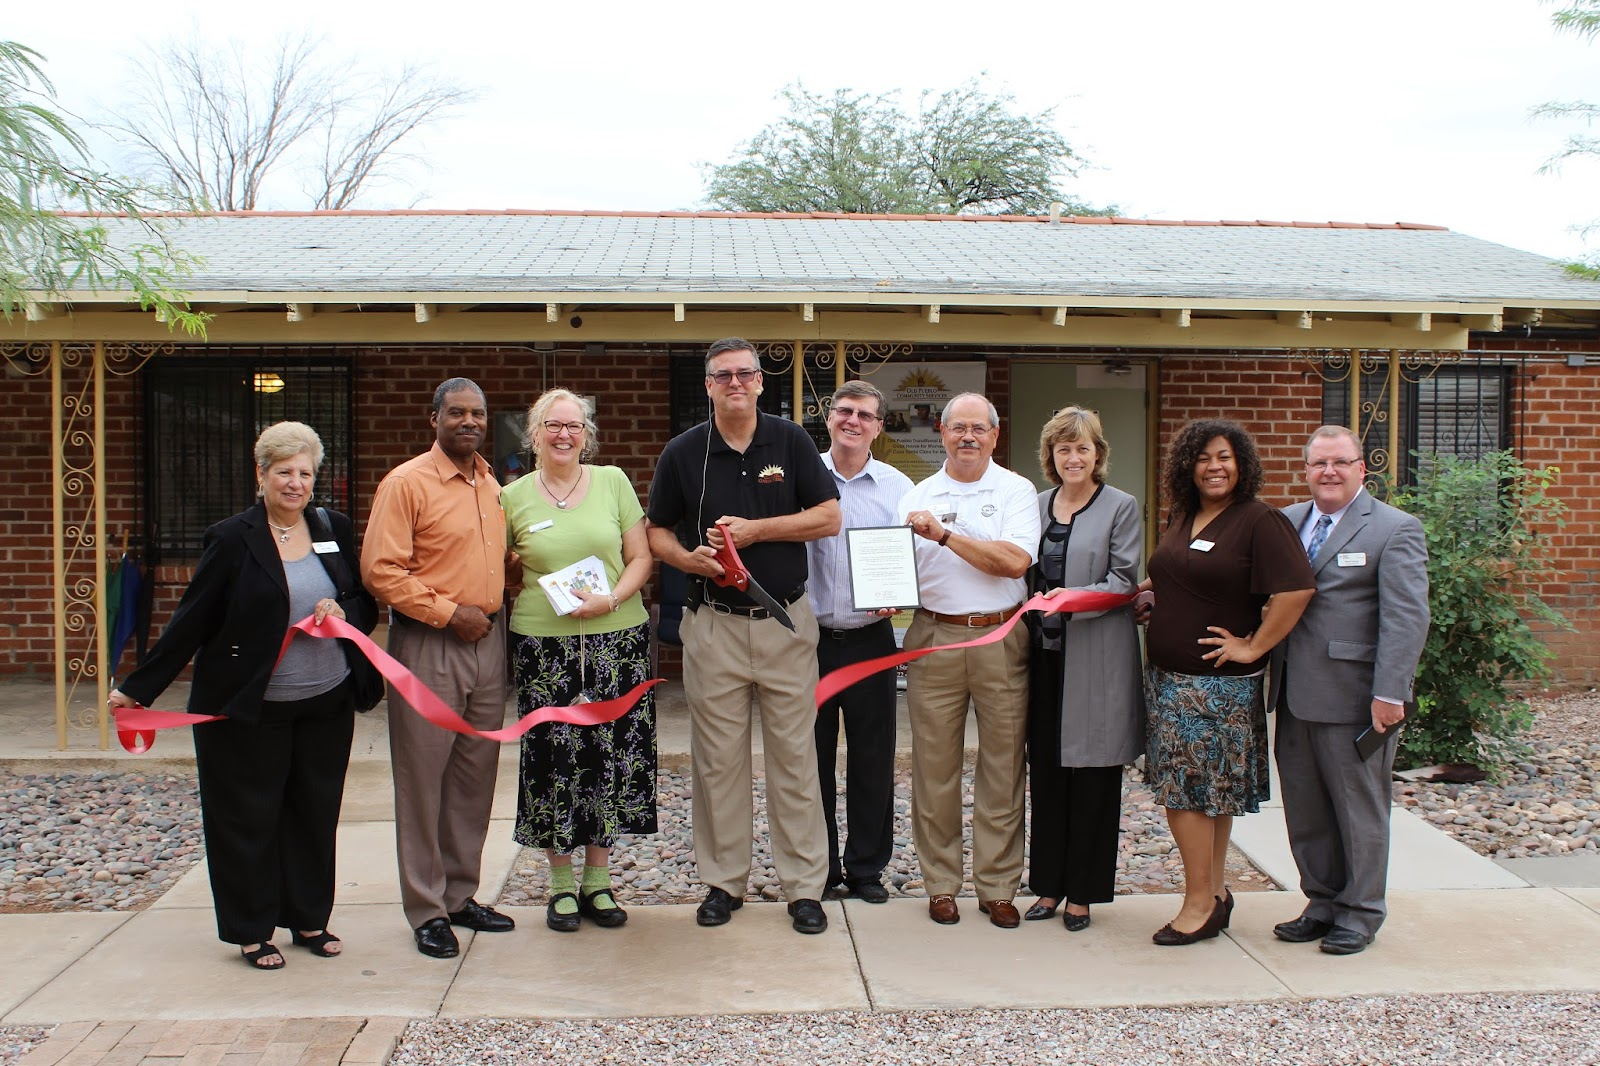 Old Pueblo Community Services - Members of the community celebrate the opening of the new Old Pueblo Substance Abuse Residential Rehabilitative Treatment Program (SARRTP).  This new recovery community will provide a community-based, residential environment with supportive services that meets the needs of the Veterans receiving substance use treatment at the VA hospital.